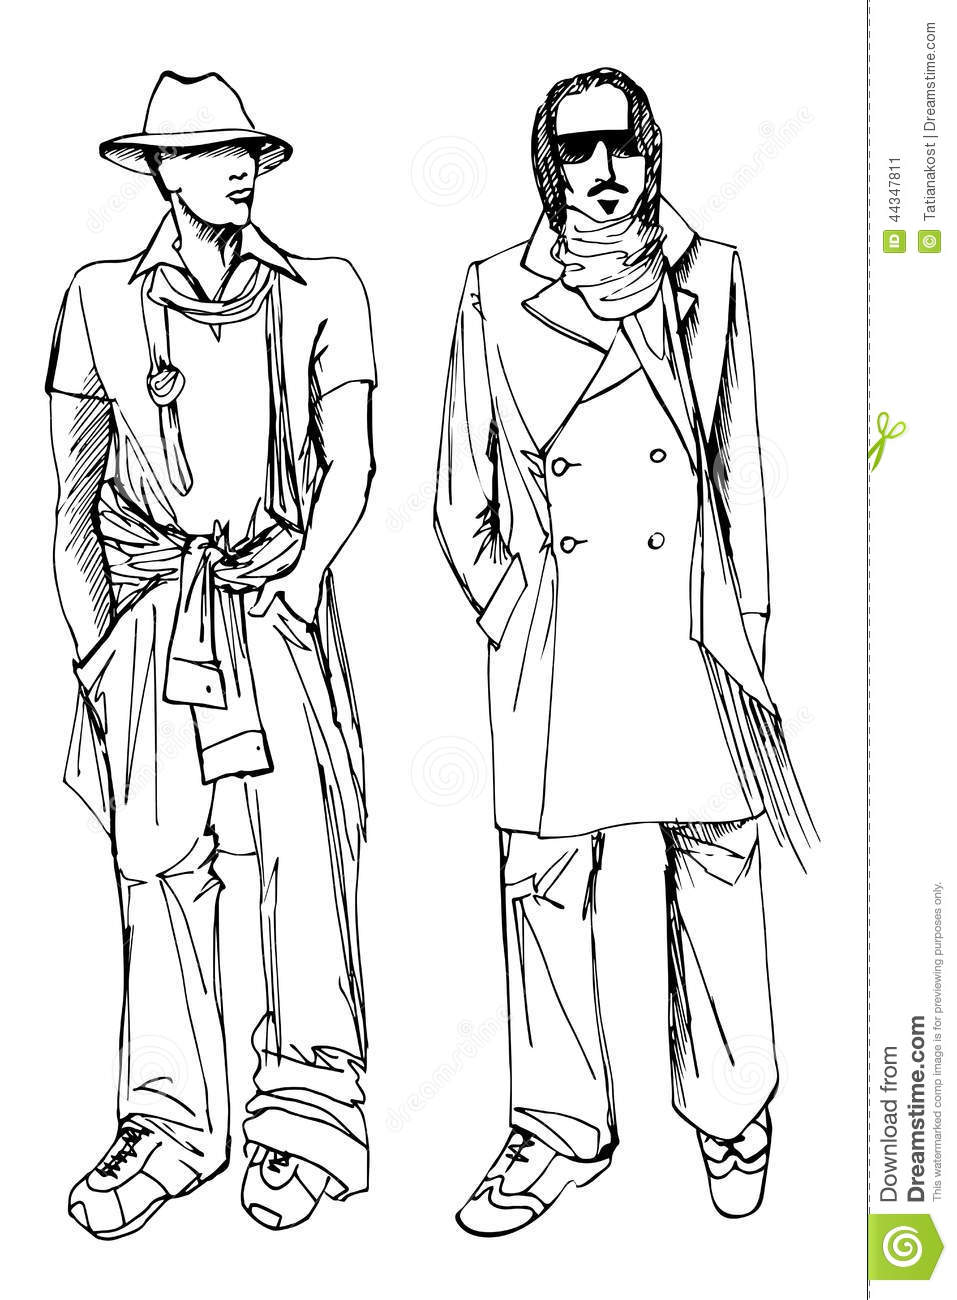 Two Stylish Dude Men .Fashion Vector Sketch Stock Vector